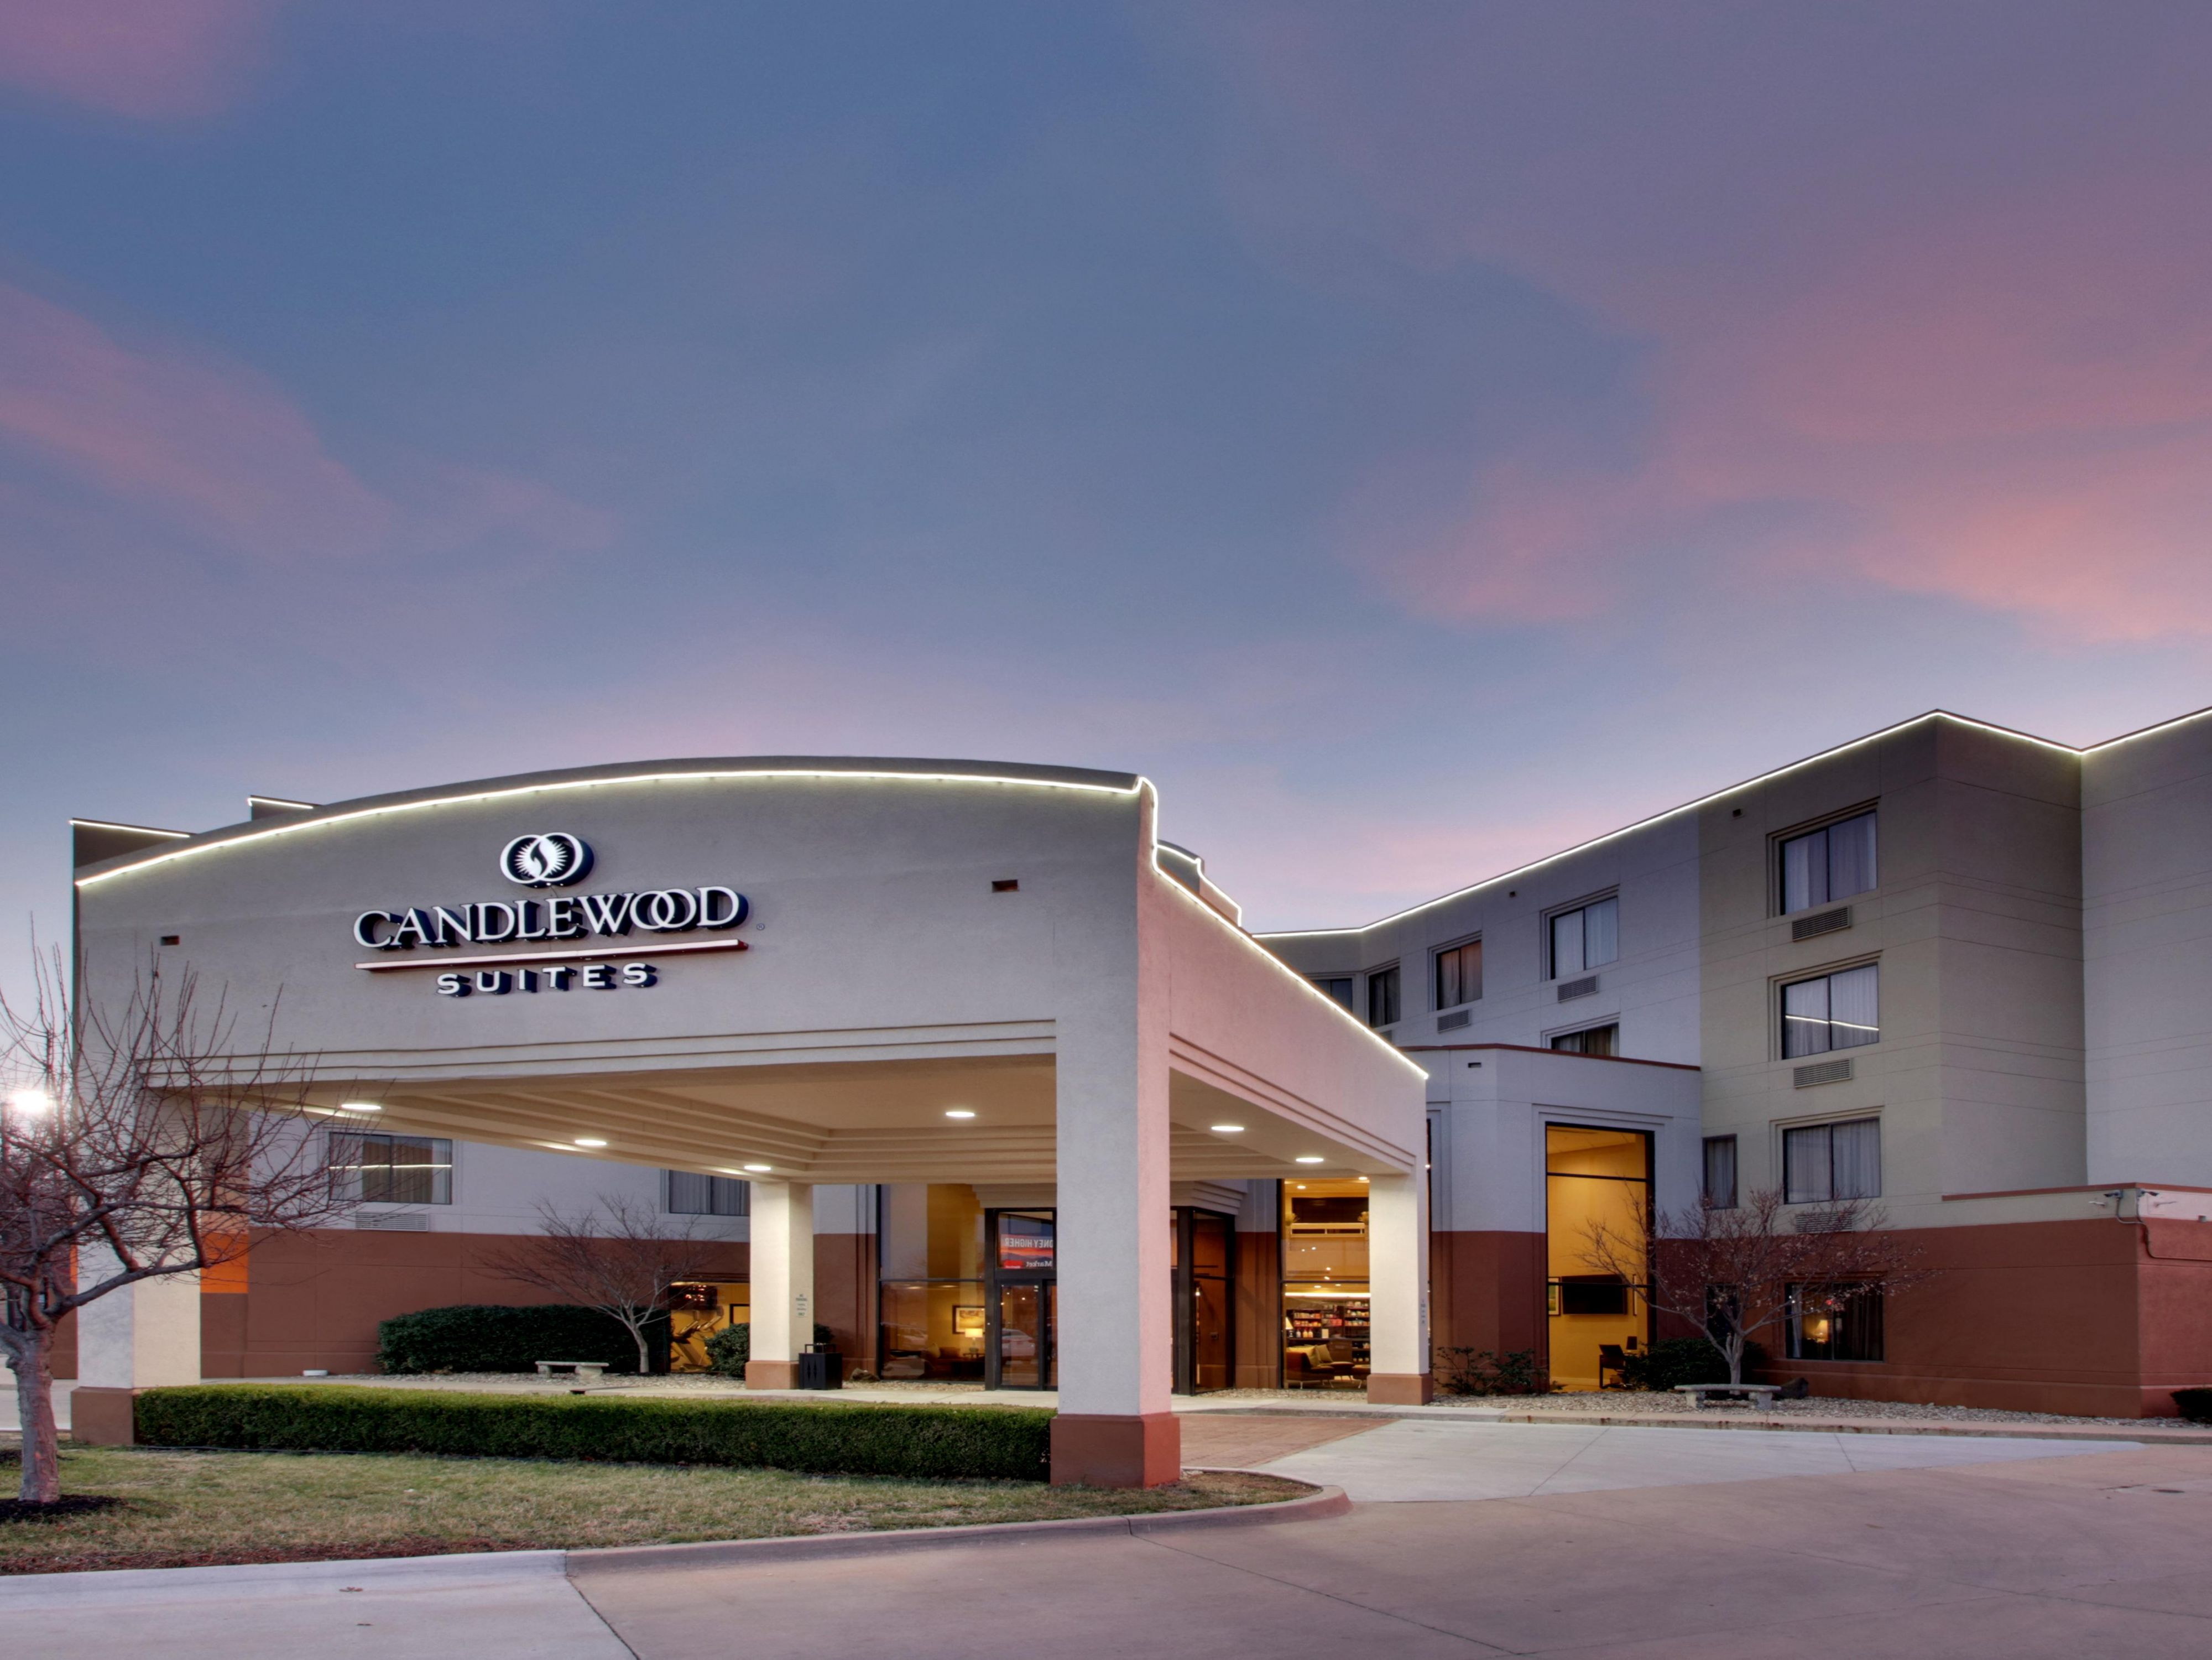 Candlewood Suites Wichita East - Extended Stay Hotel in